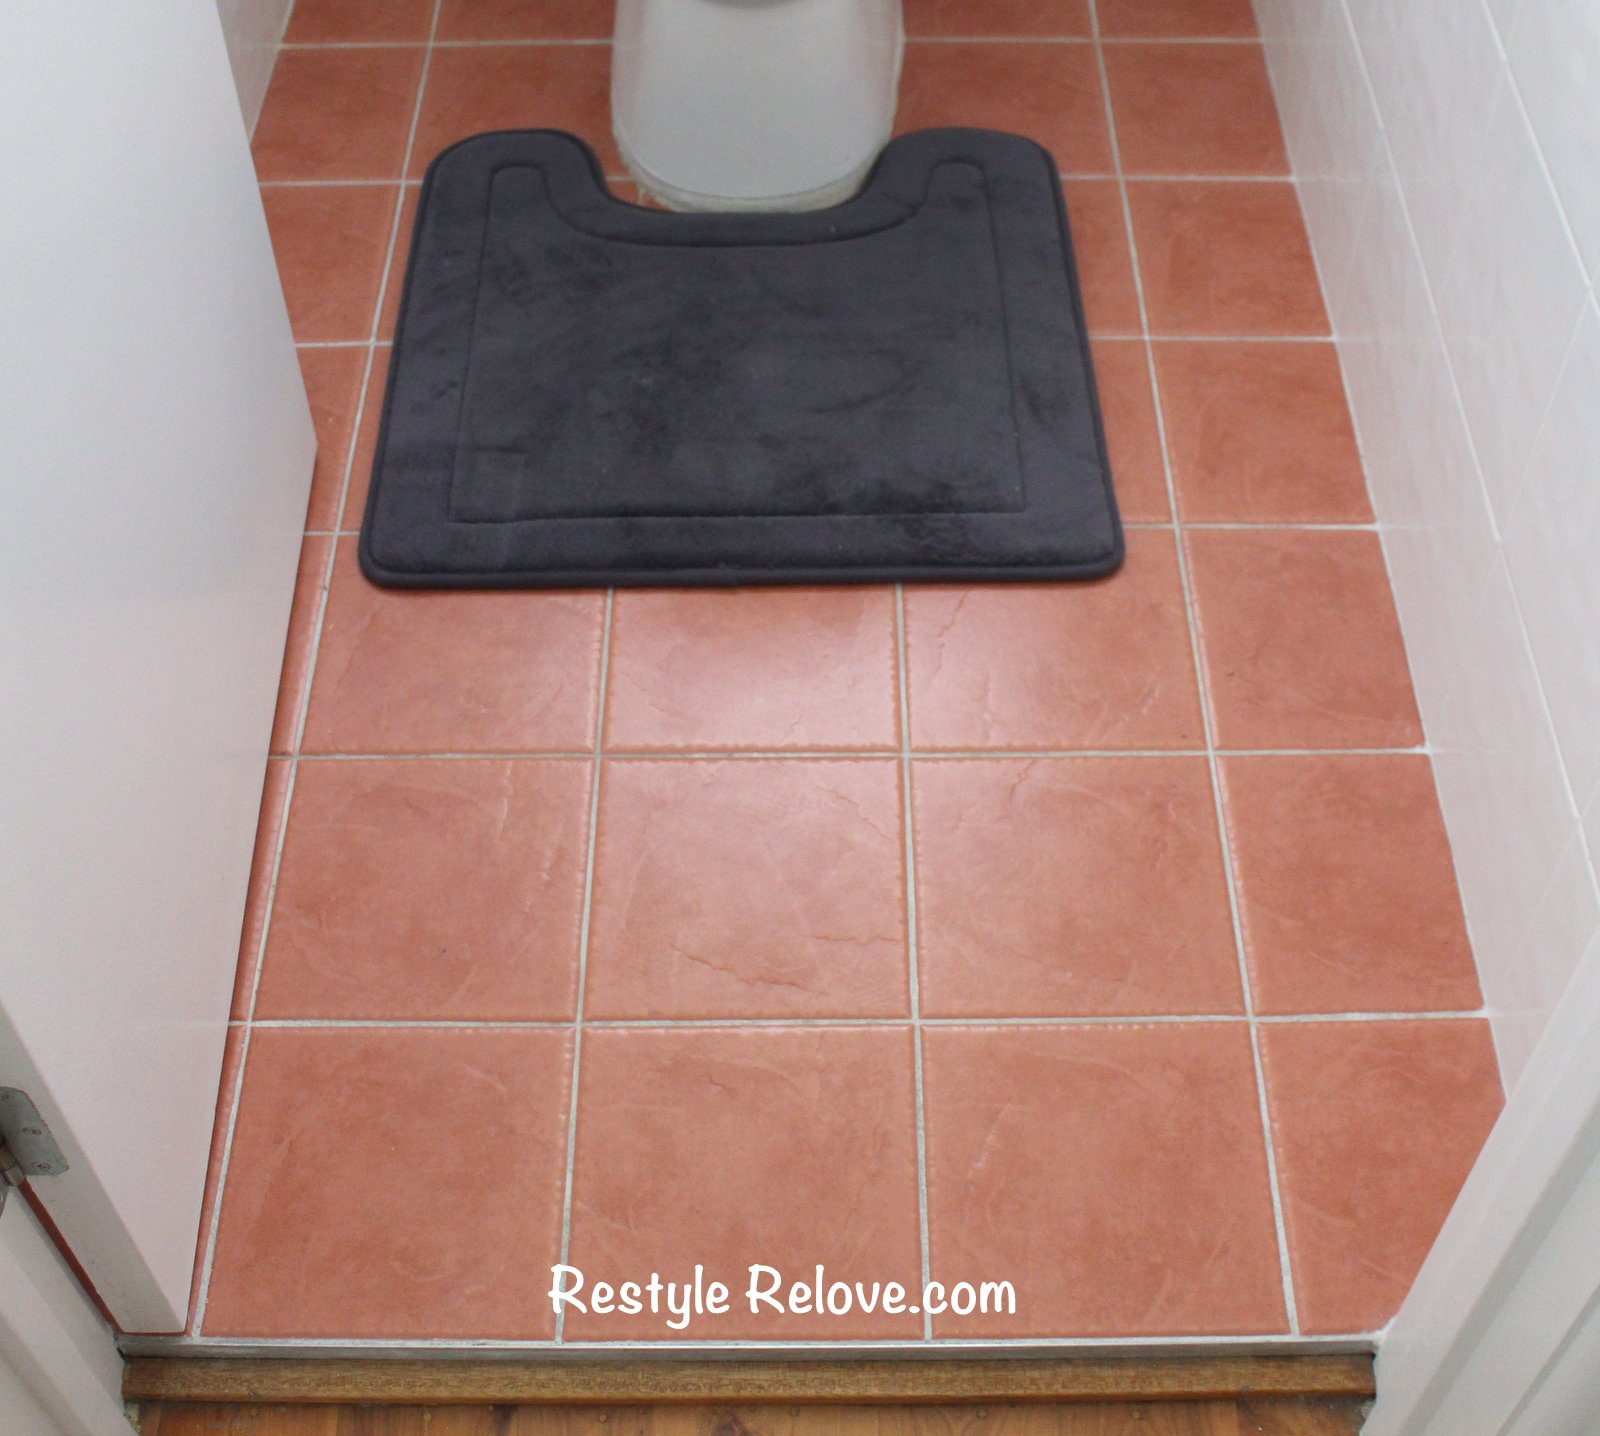 Terracotta Bad toilet and bathroom restyled in terracotta and blue